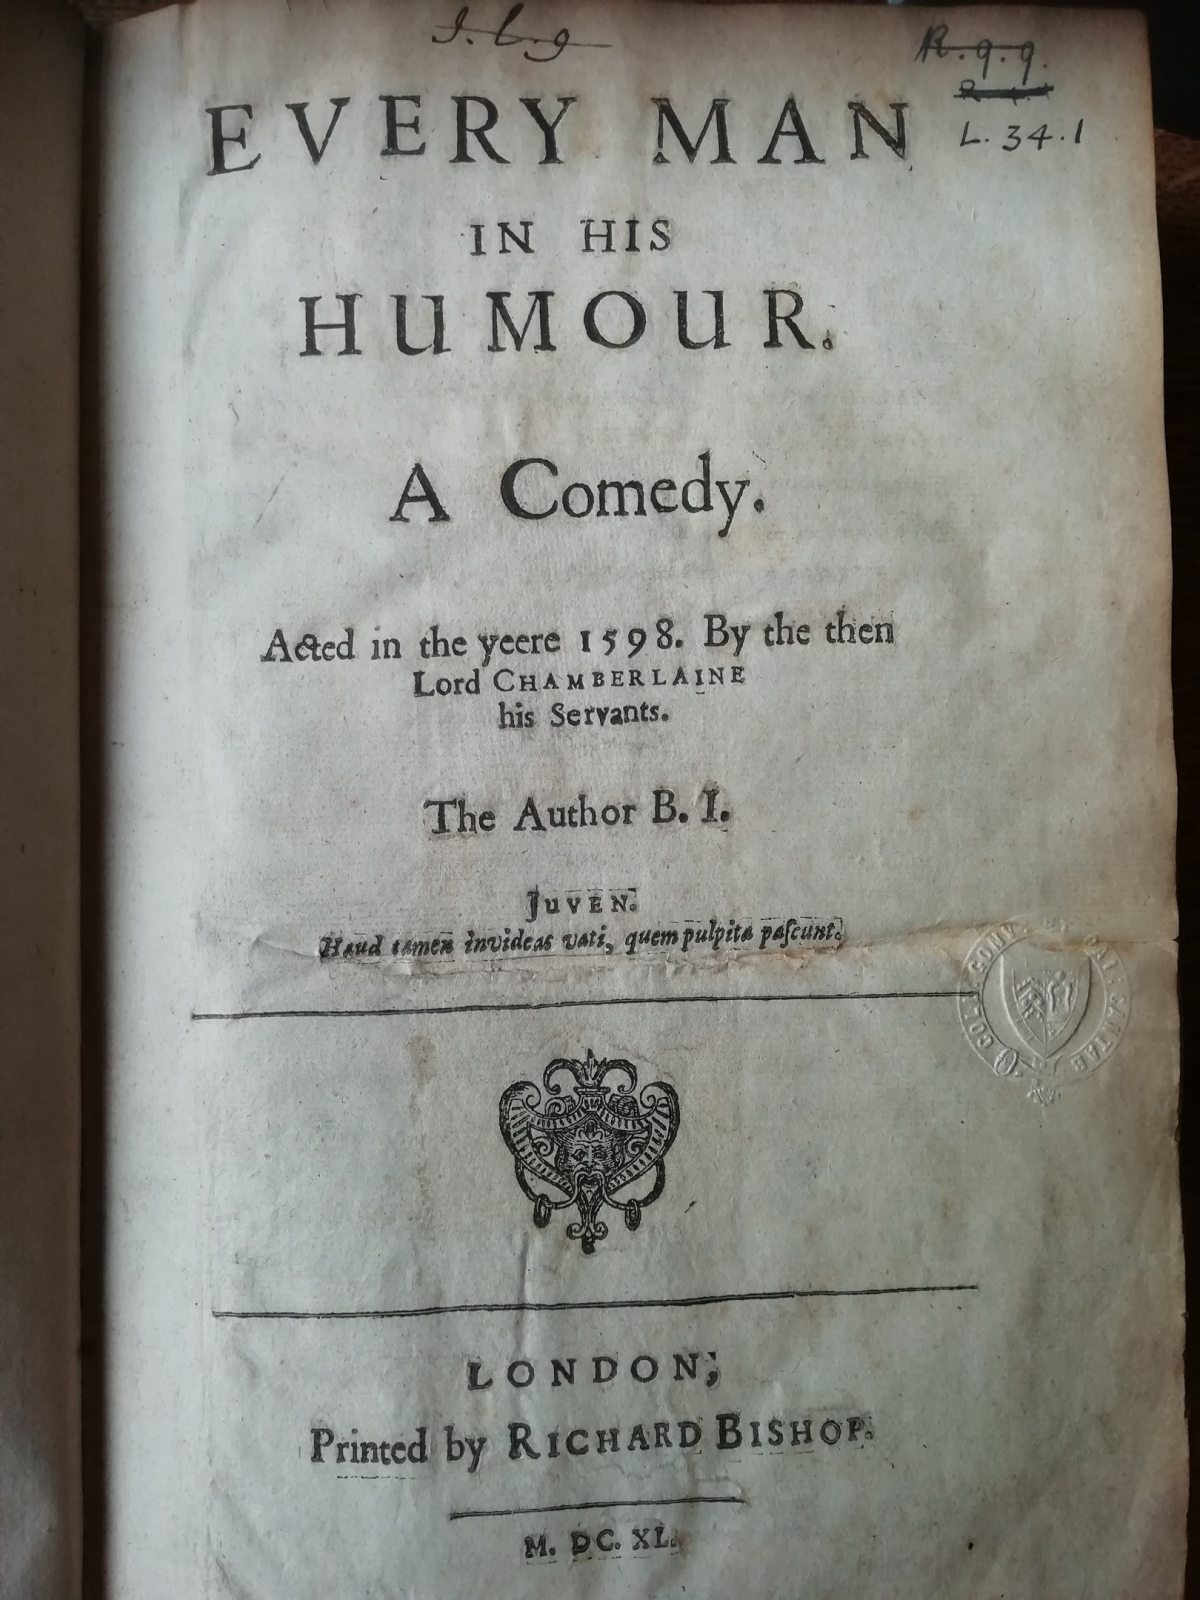 Every Man in his Humour title page